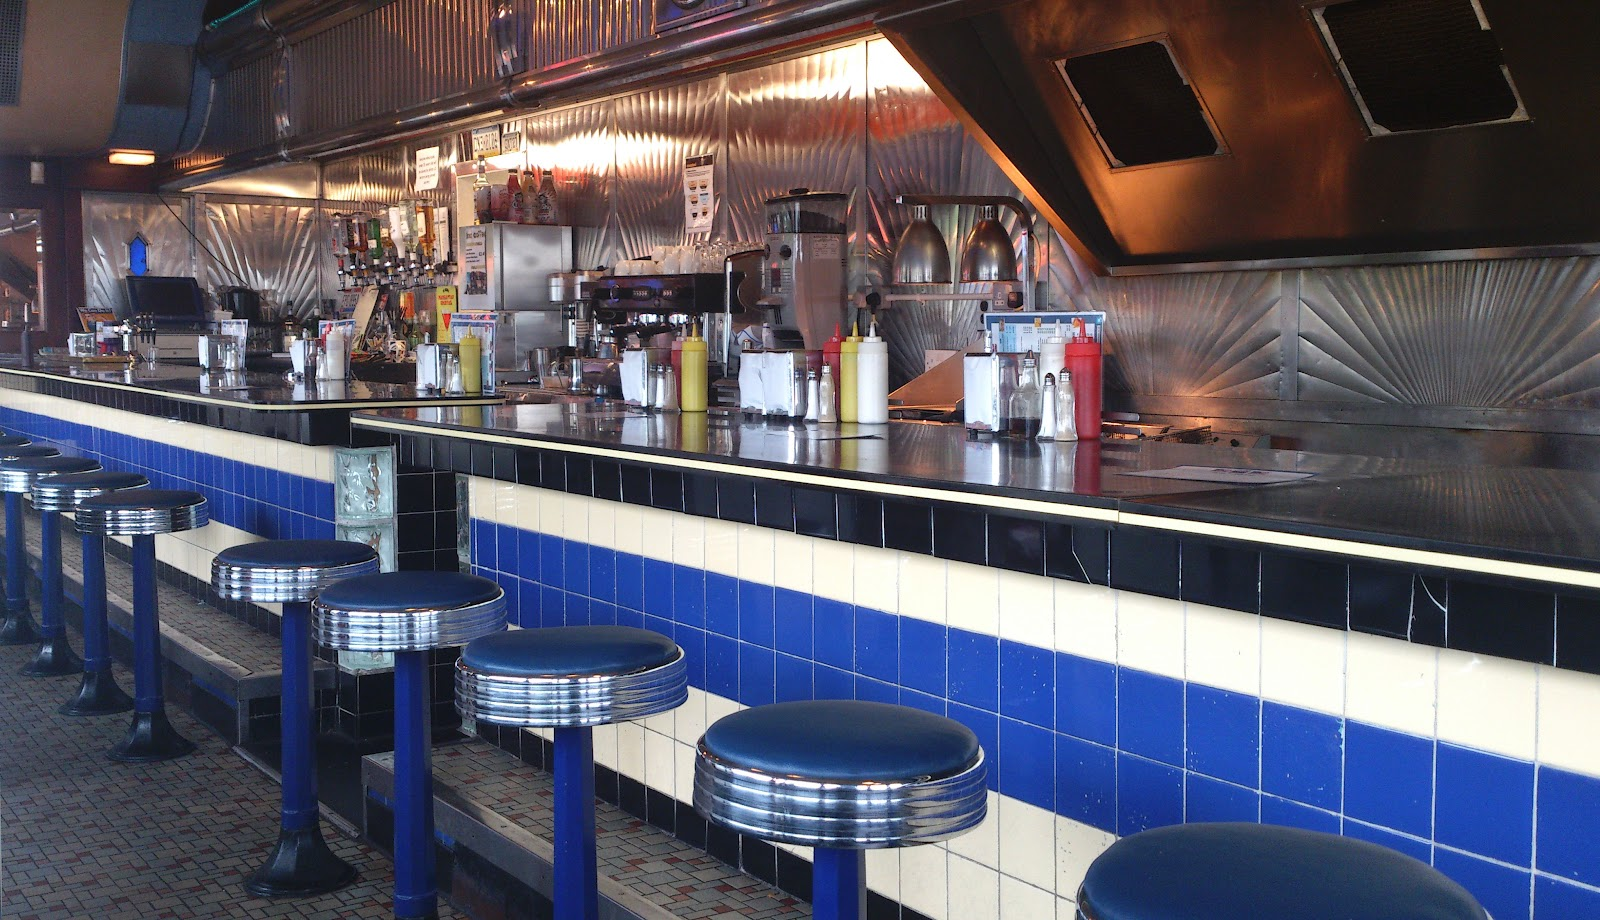 My Norfolk Life: The American Diner